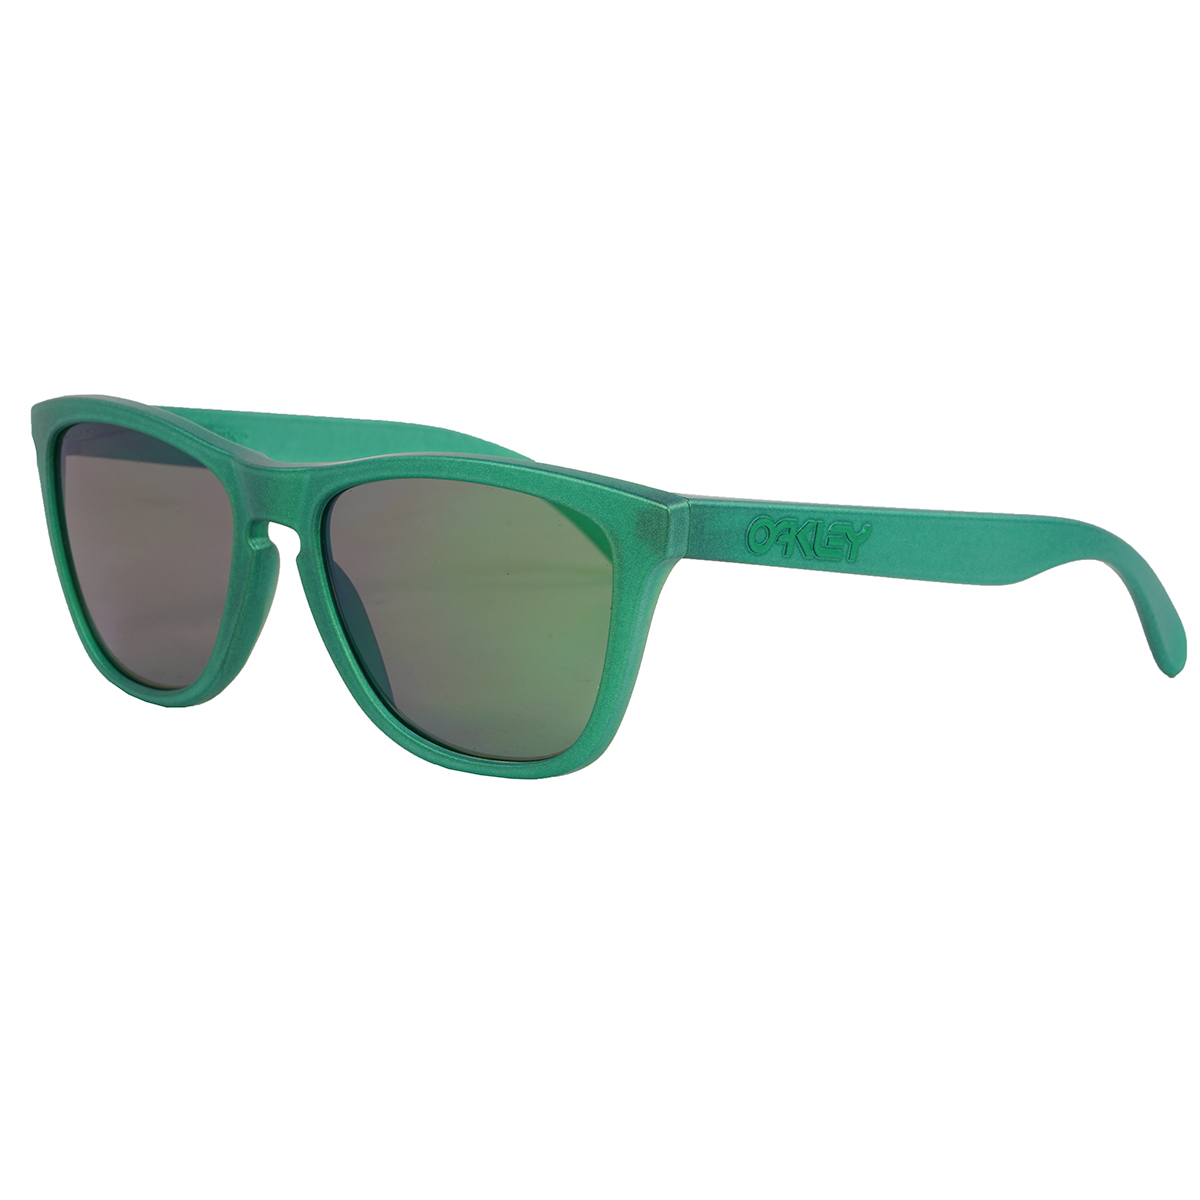 88dfff07d8 Oakley Frogskins Sunglasses X-Ray Blue Prizm Sapphire 888392286642 ...